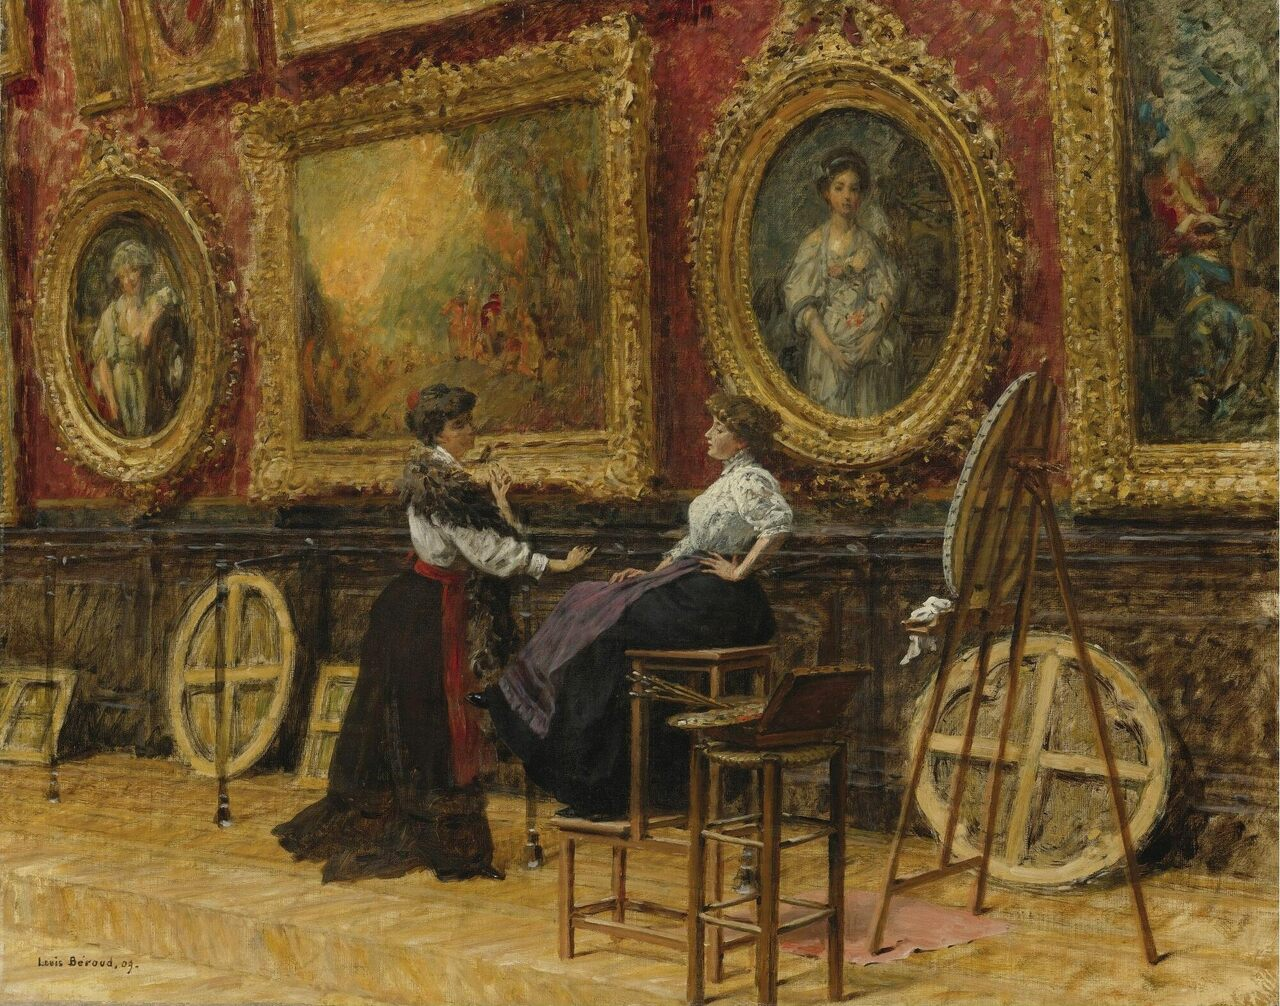 Painting by Louis Béroud depicting copyists in the Louvre.